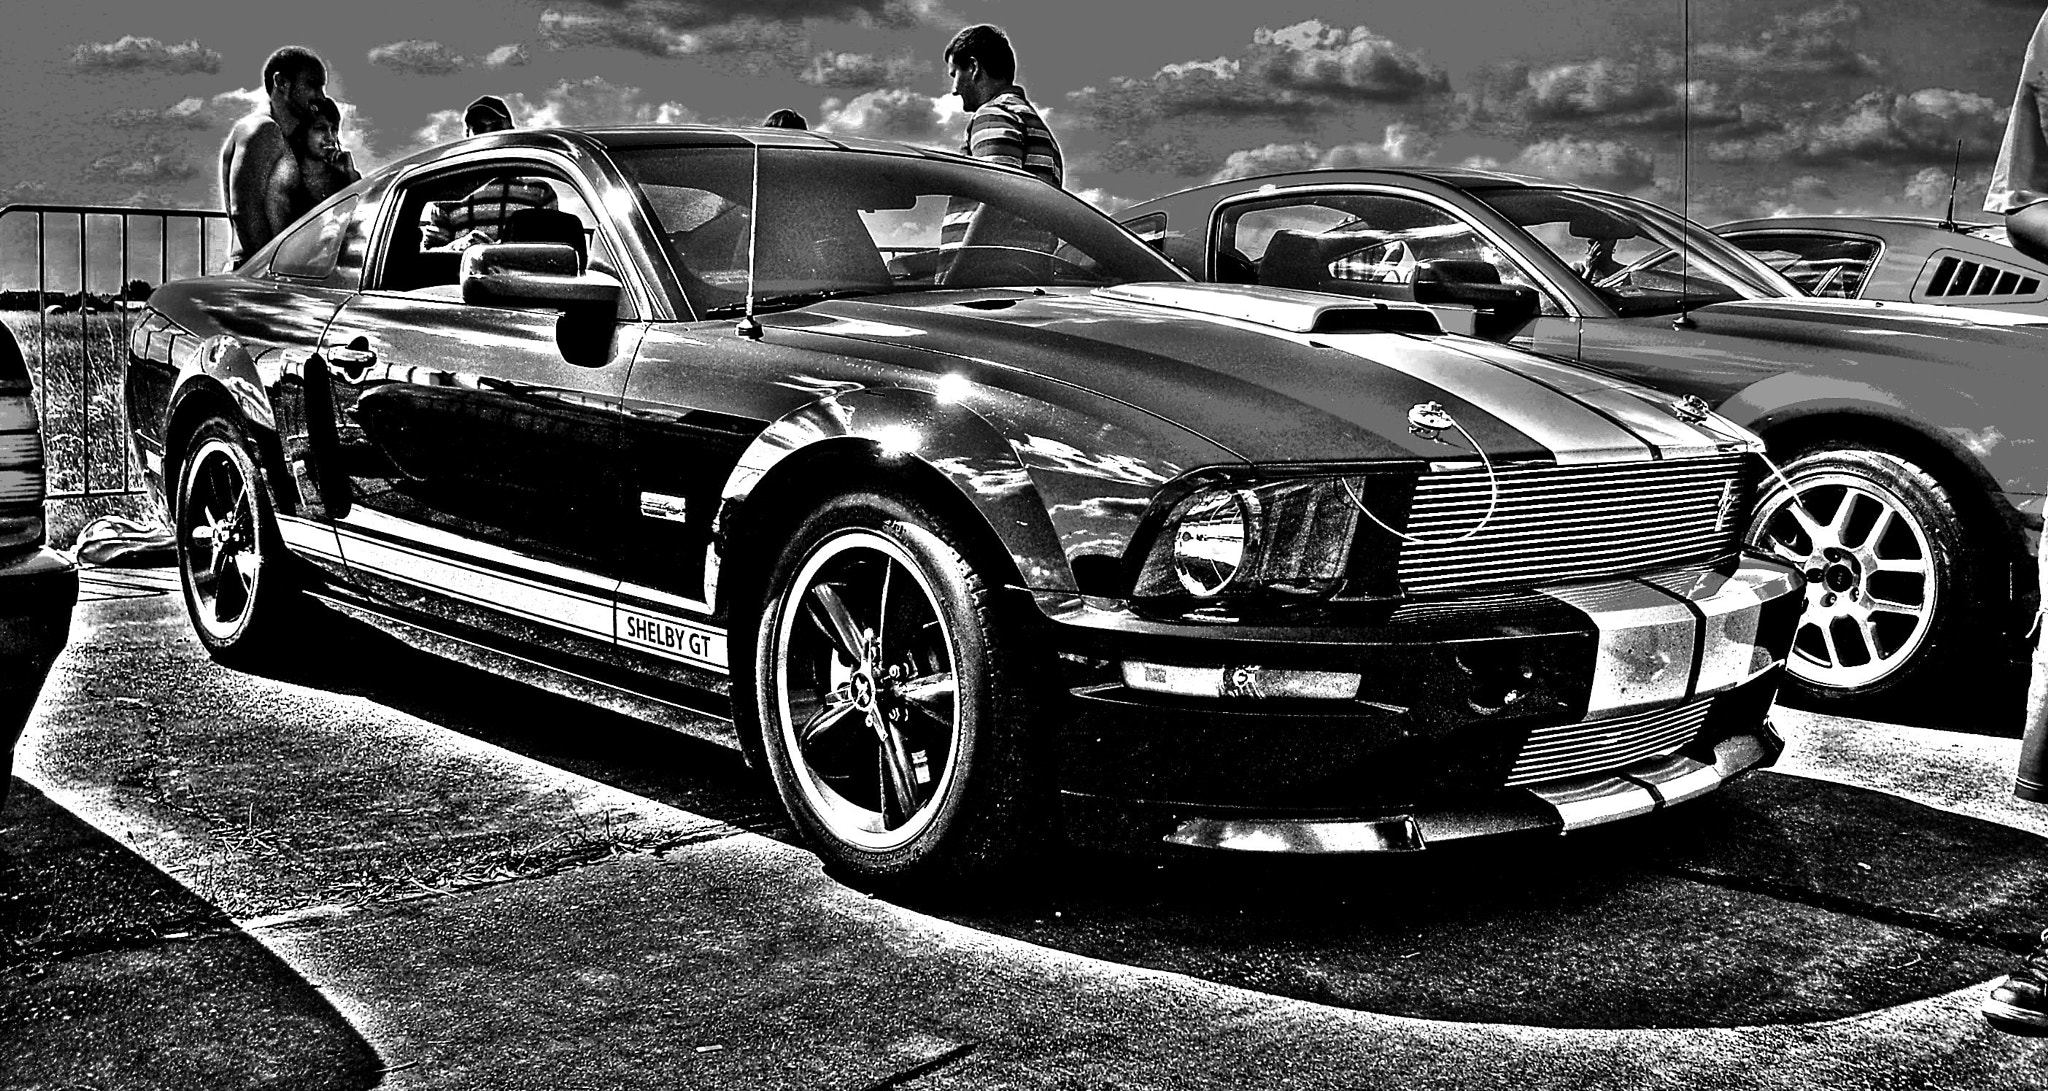 Photograph Mustang GT Shelby by Łukasz Bomber on 500px